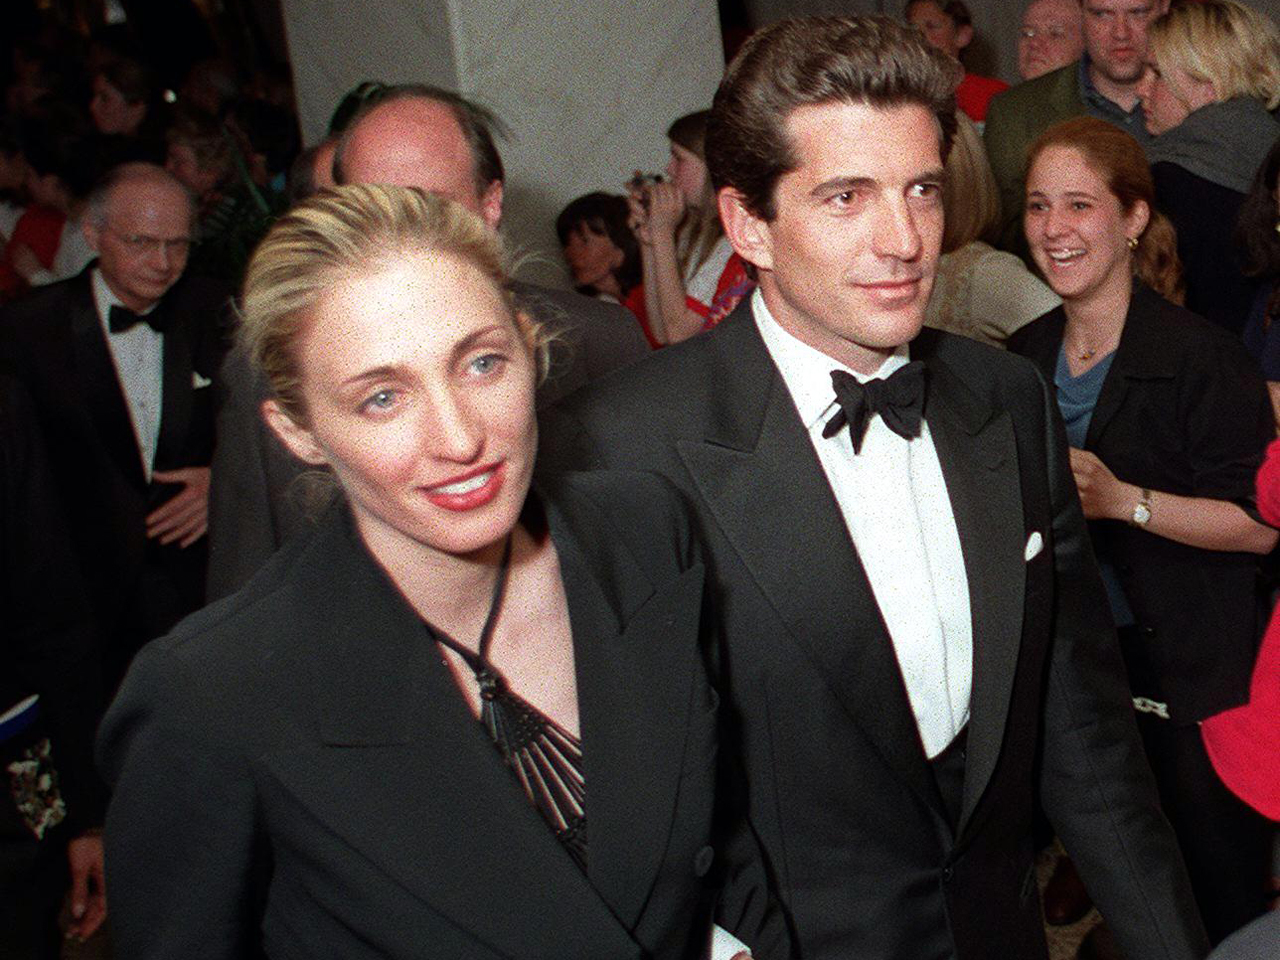 John F Kennedy Jr Remembered 13 Years After His Death Cbs News,Christina El Moussa Wedding Ring With Tarek